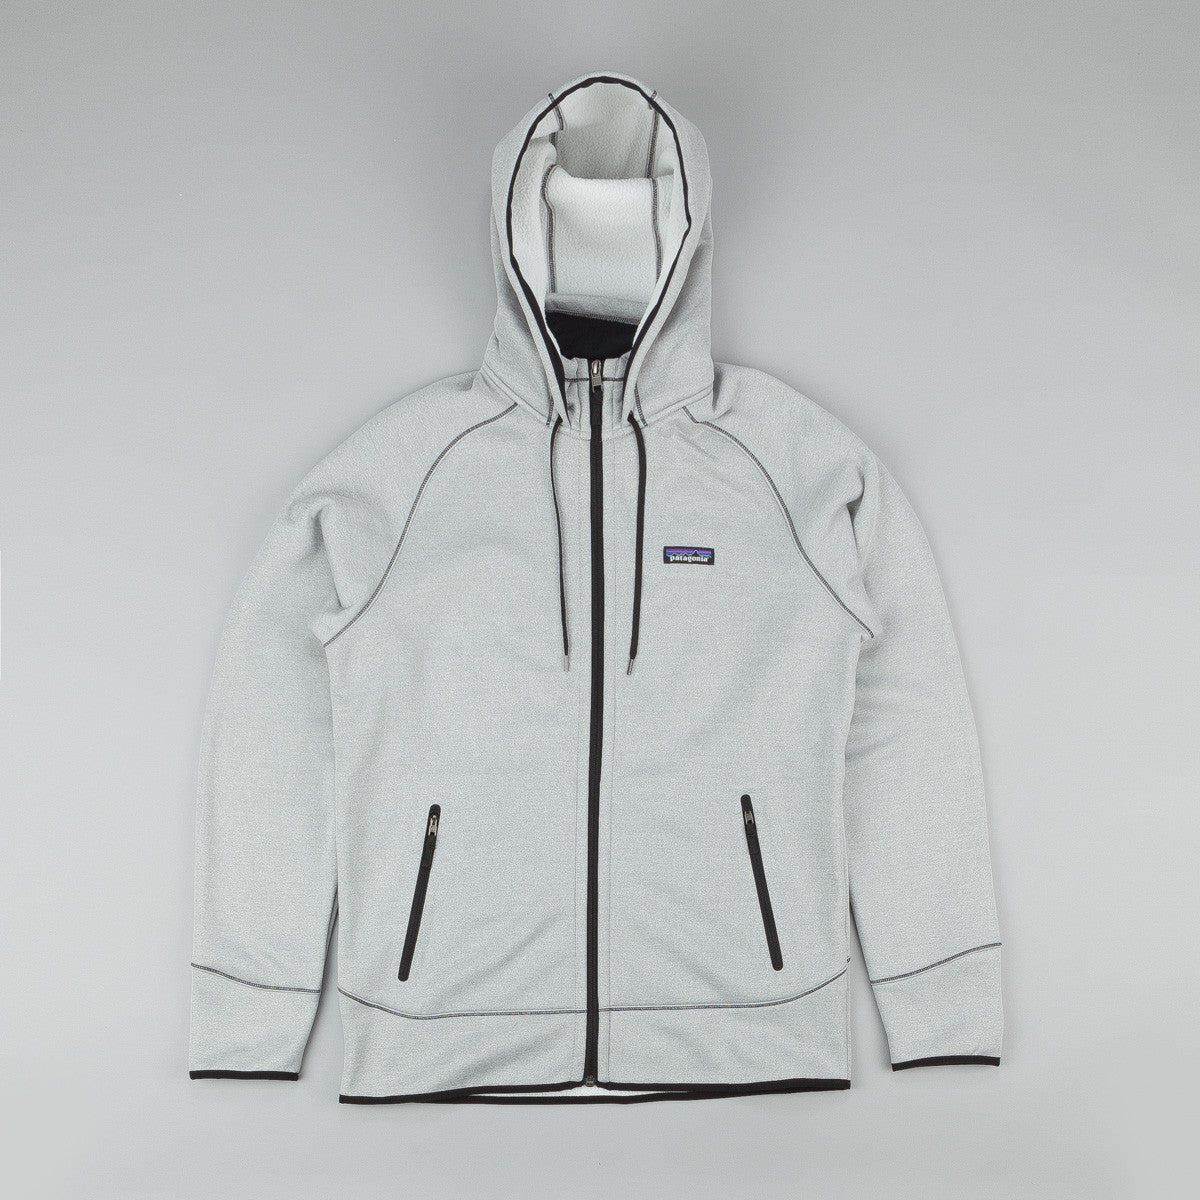 Patagonia Tech Fleece Hooded Sweatshirt